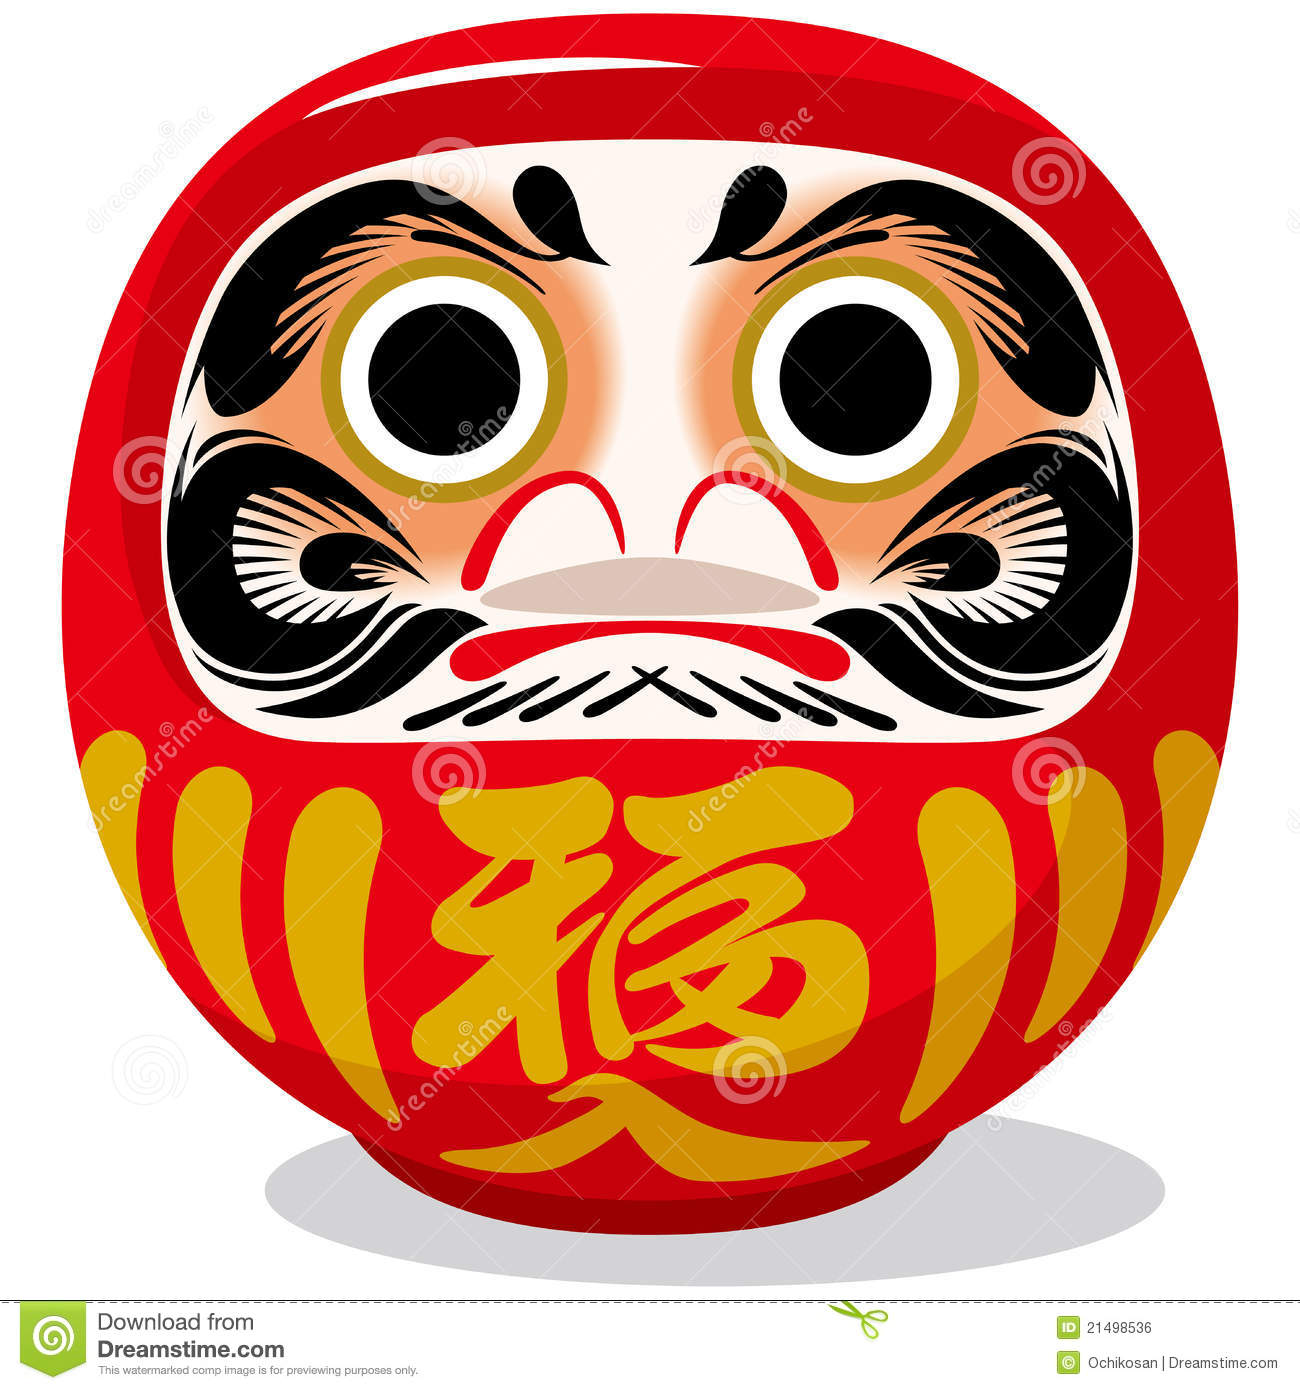 Purple Pen in Japan: How to Use the Daruma Doll